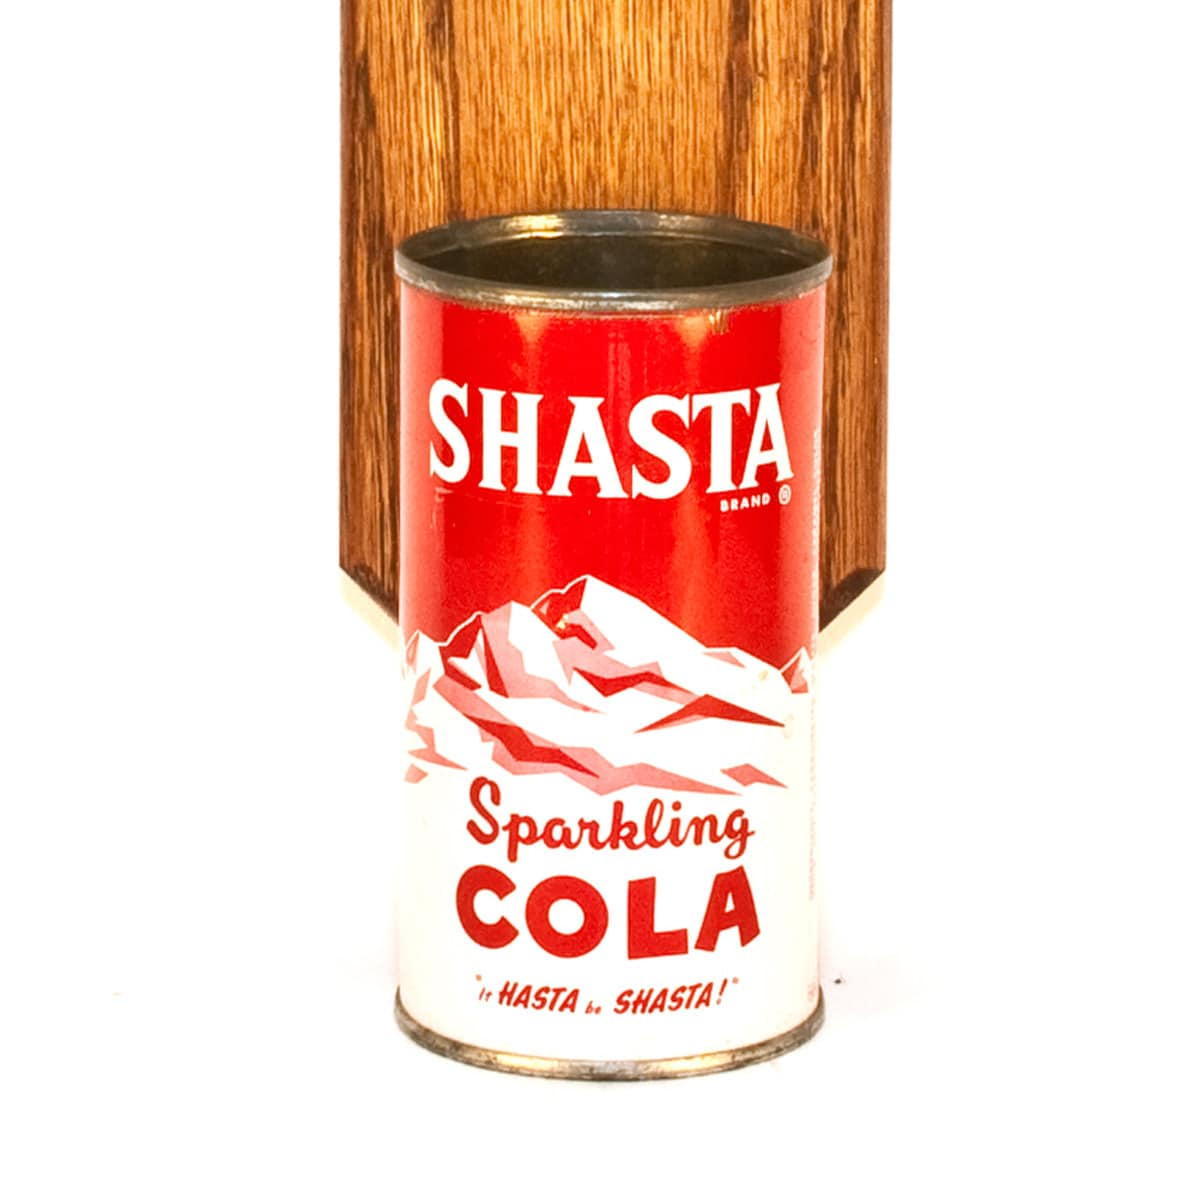 Shasta Wall Mounted Bottle Opener With Vintage Soda Pop Can